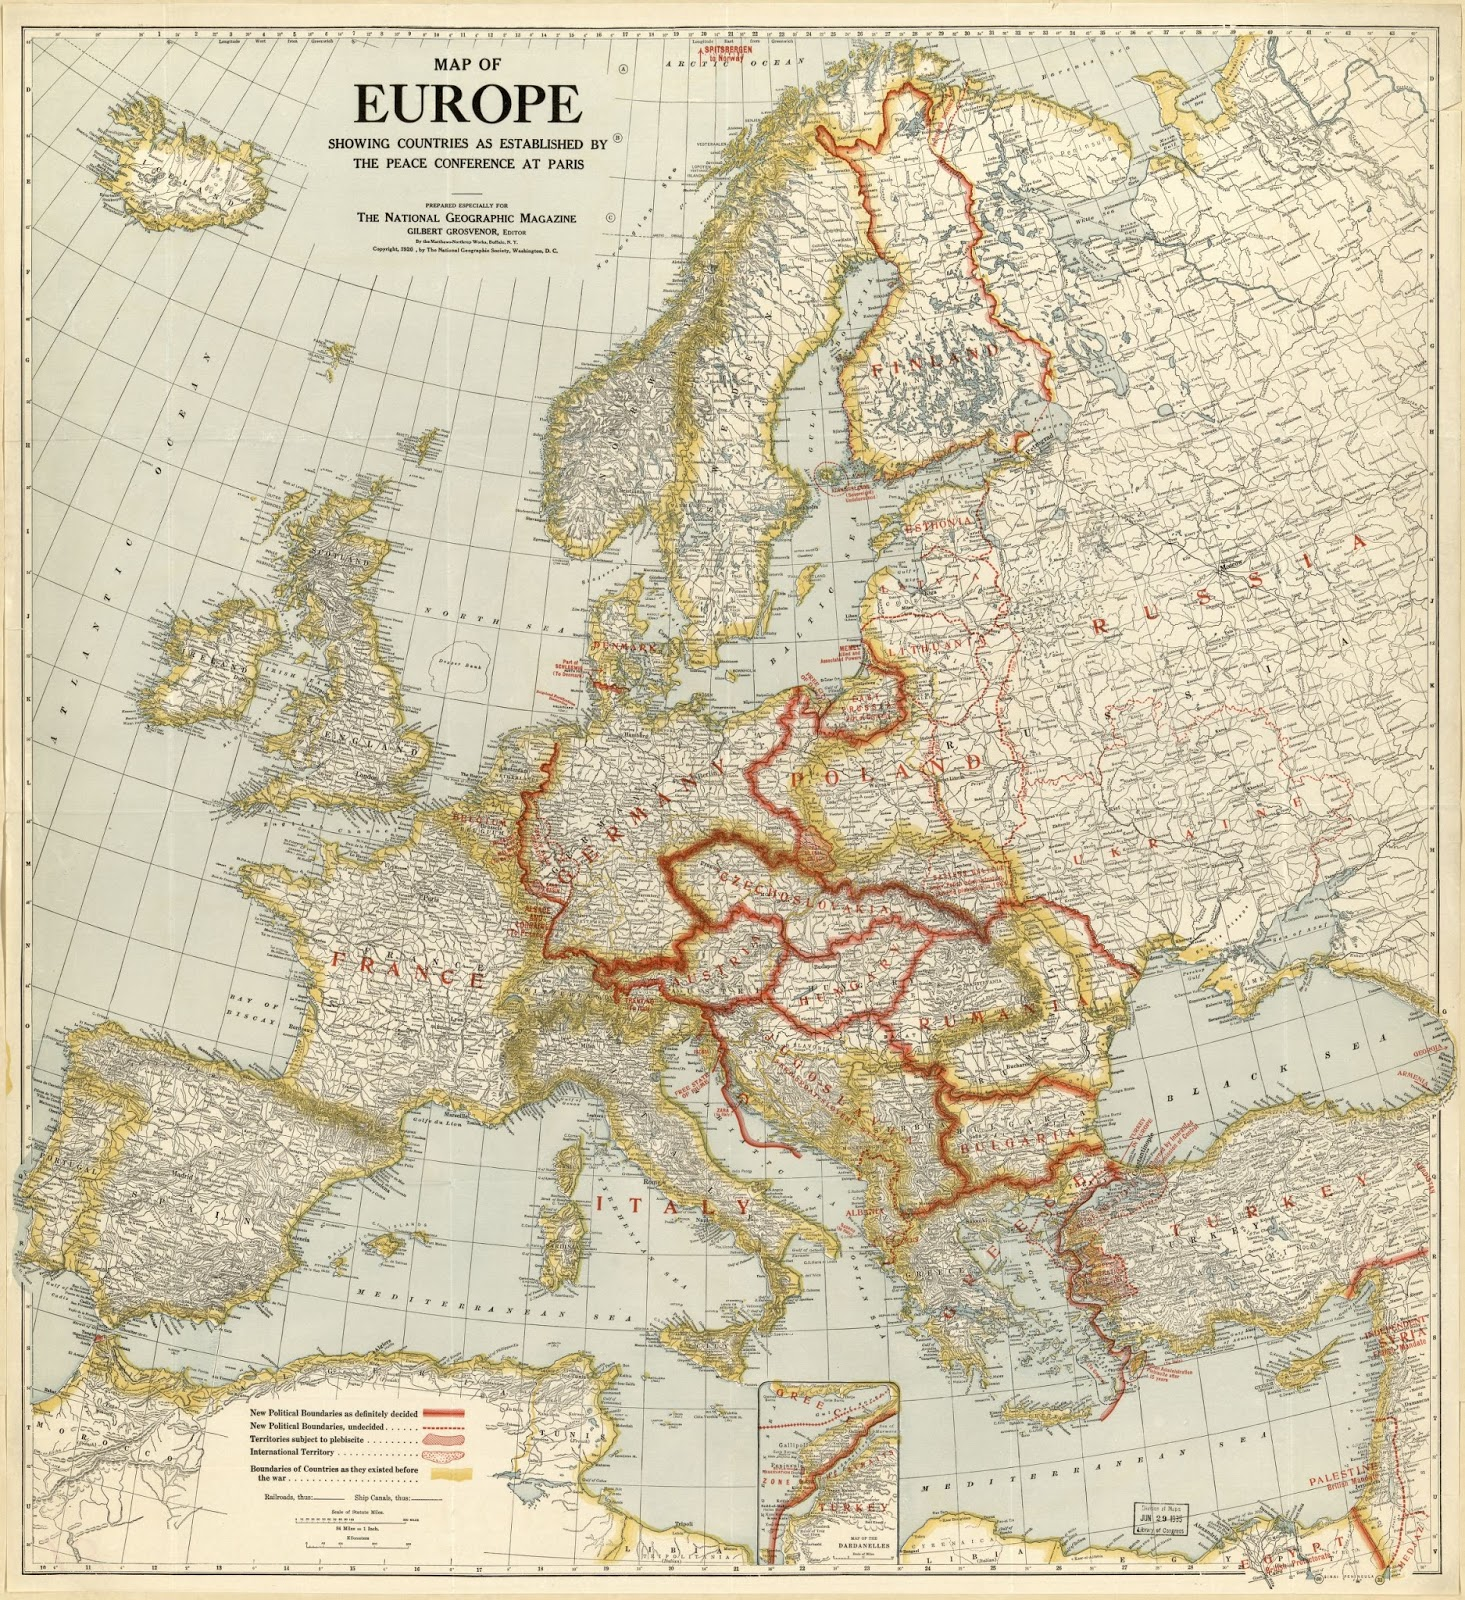 Map of Europe showing countries as established by the peace conference at Paris